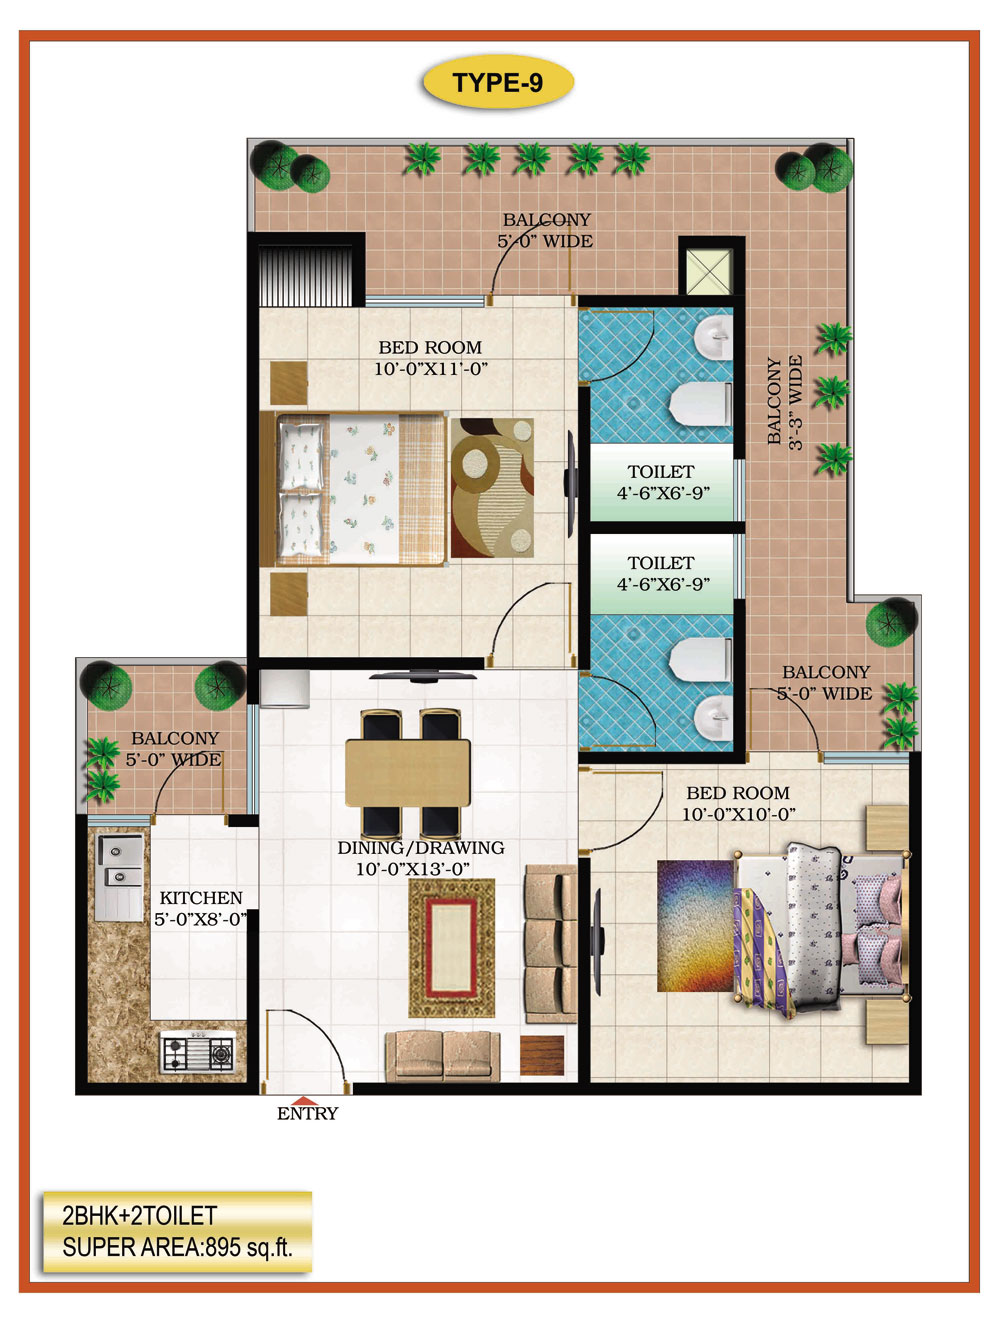 High End Group Raj Nagar Extension floor plan 1275 sq. ft.